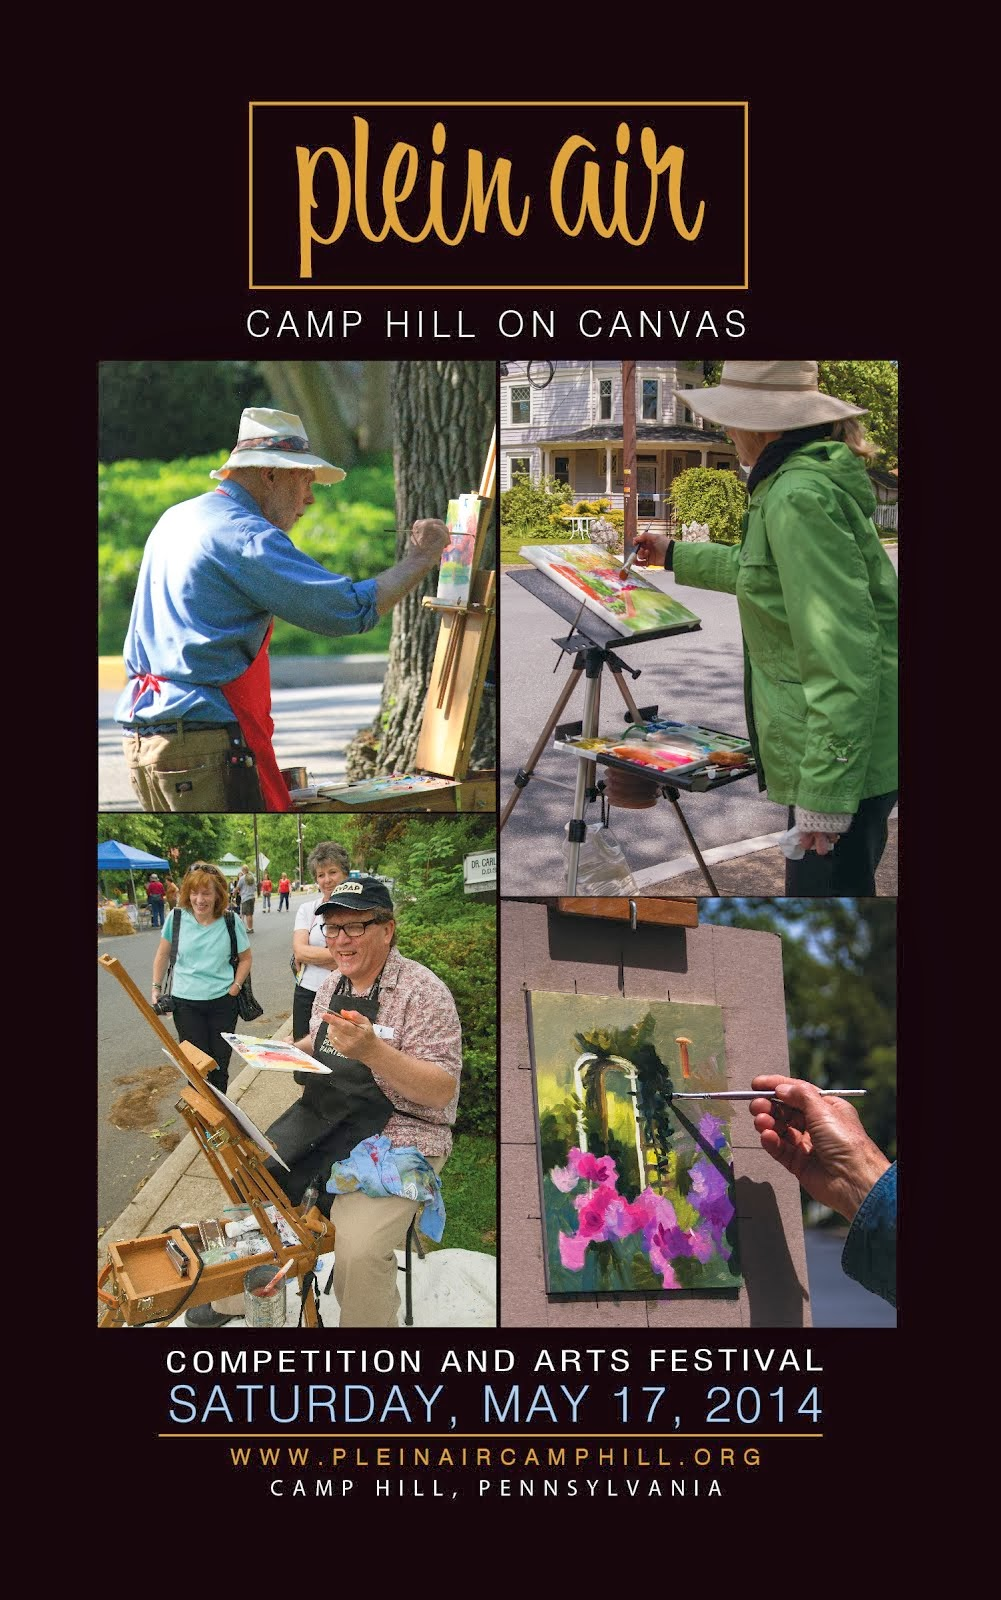 Plein Air - Camp Hill On Canvas